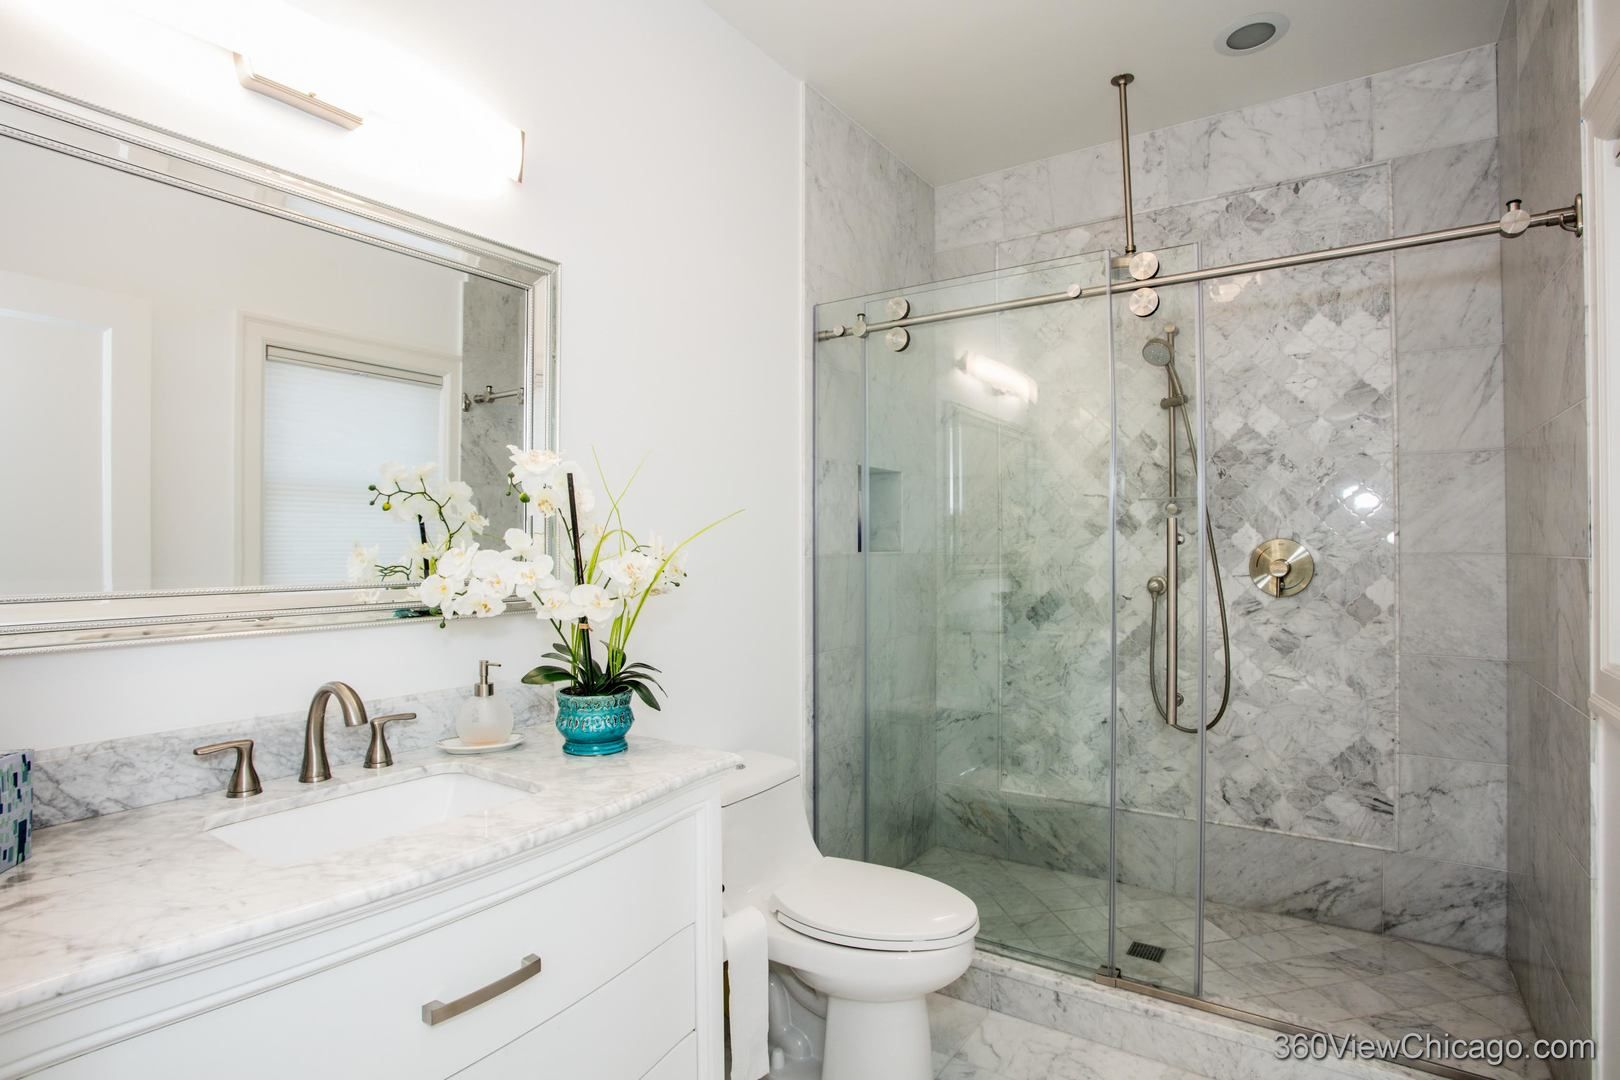 Photo 19: Photos: 1733 Troy Street in Chicago: CHI - Humboldt Park Residential for sale ()  : MLS®# 10911567